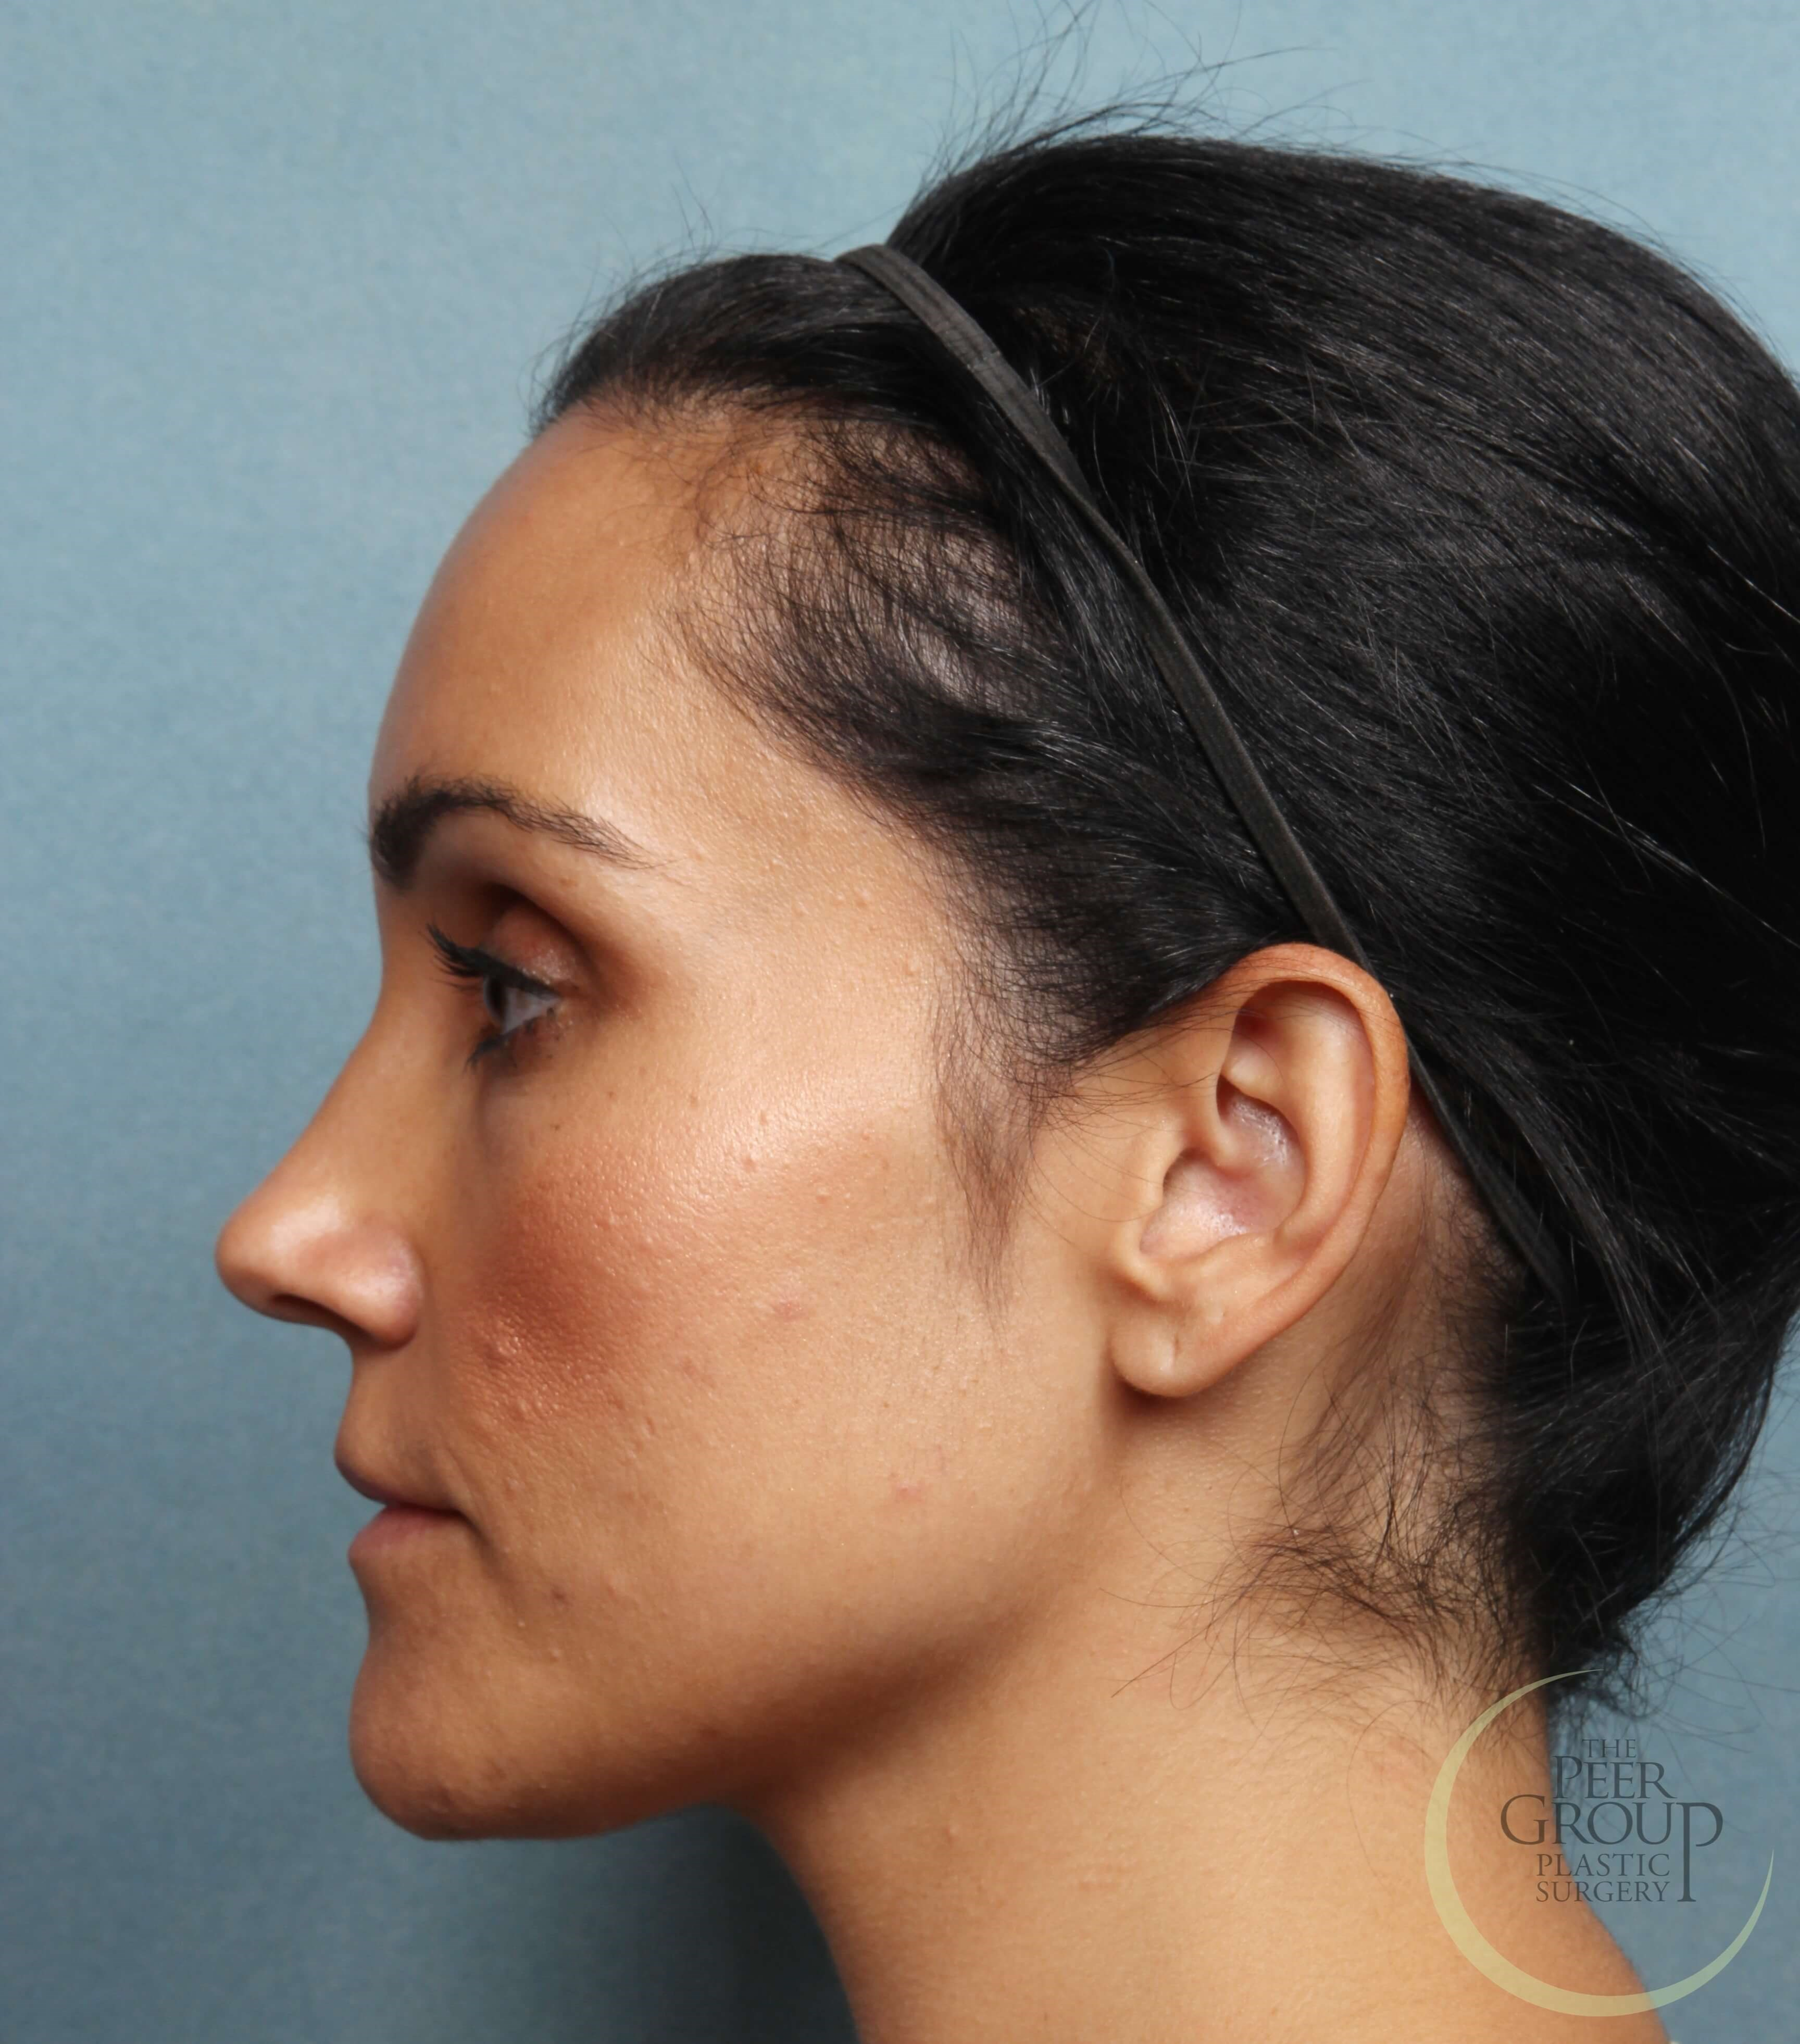 Morristown New Jersey Kybella 12 Weeks After Treatment